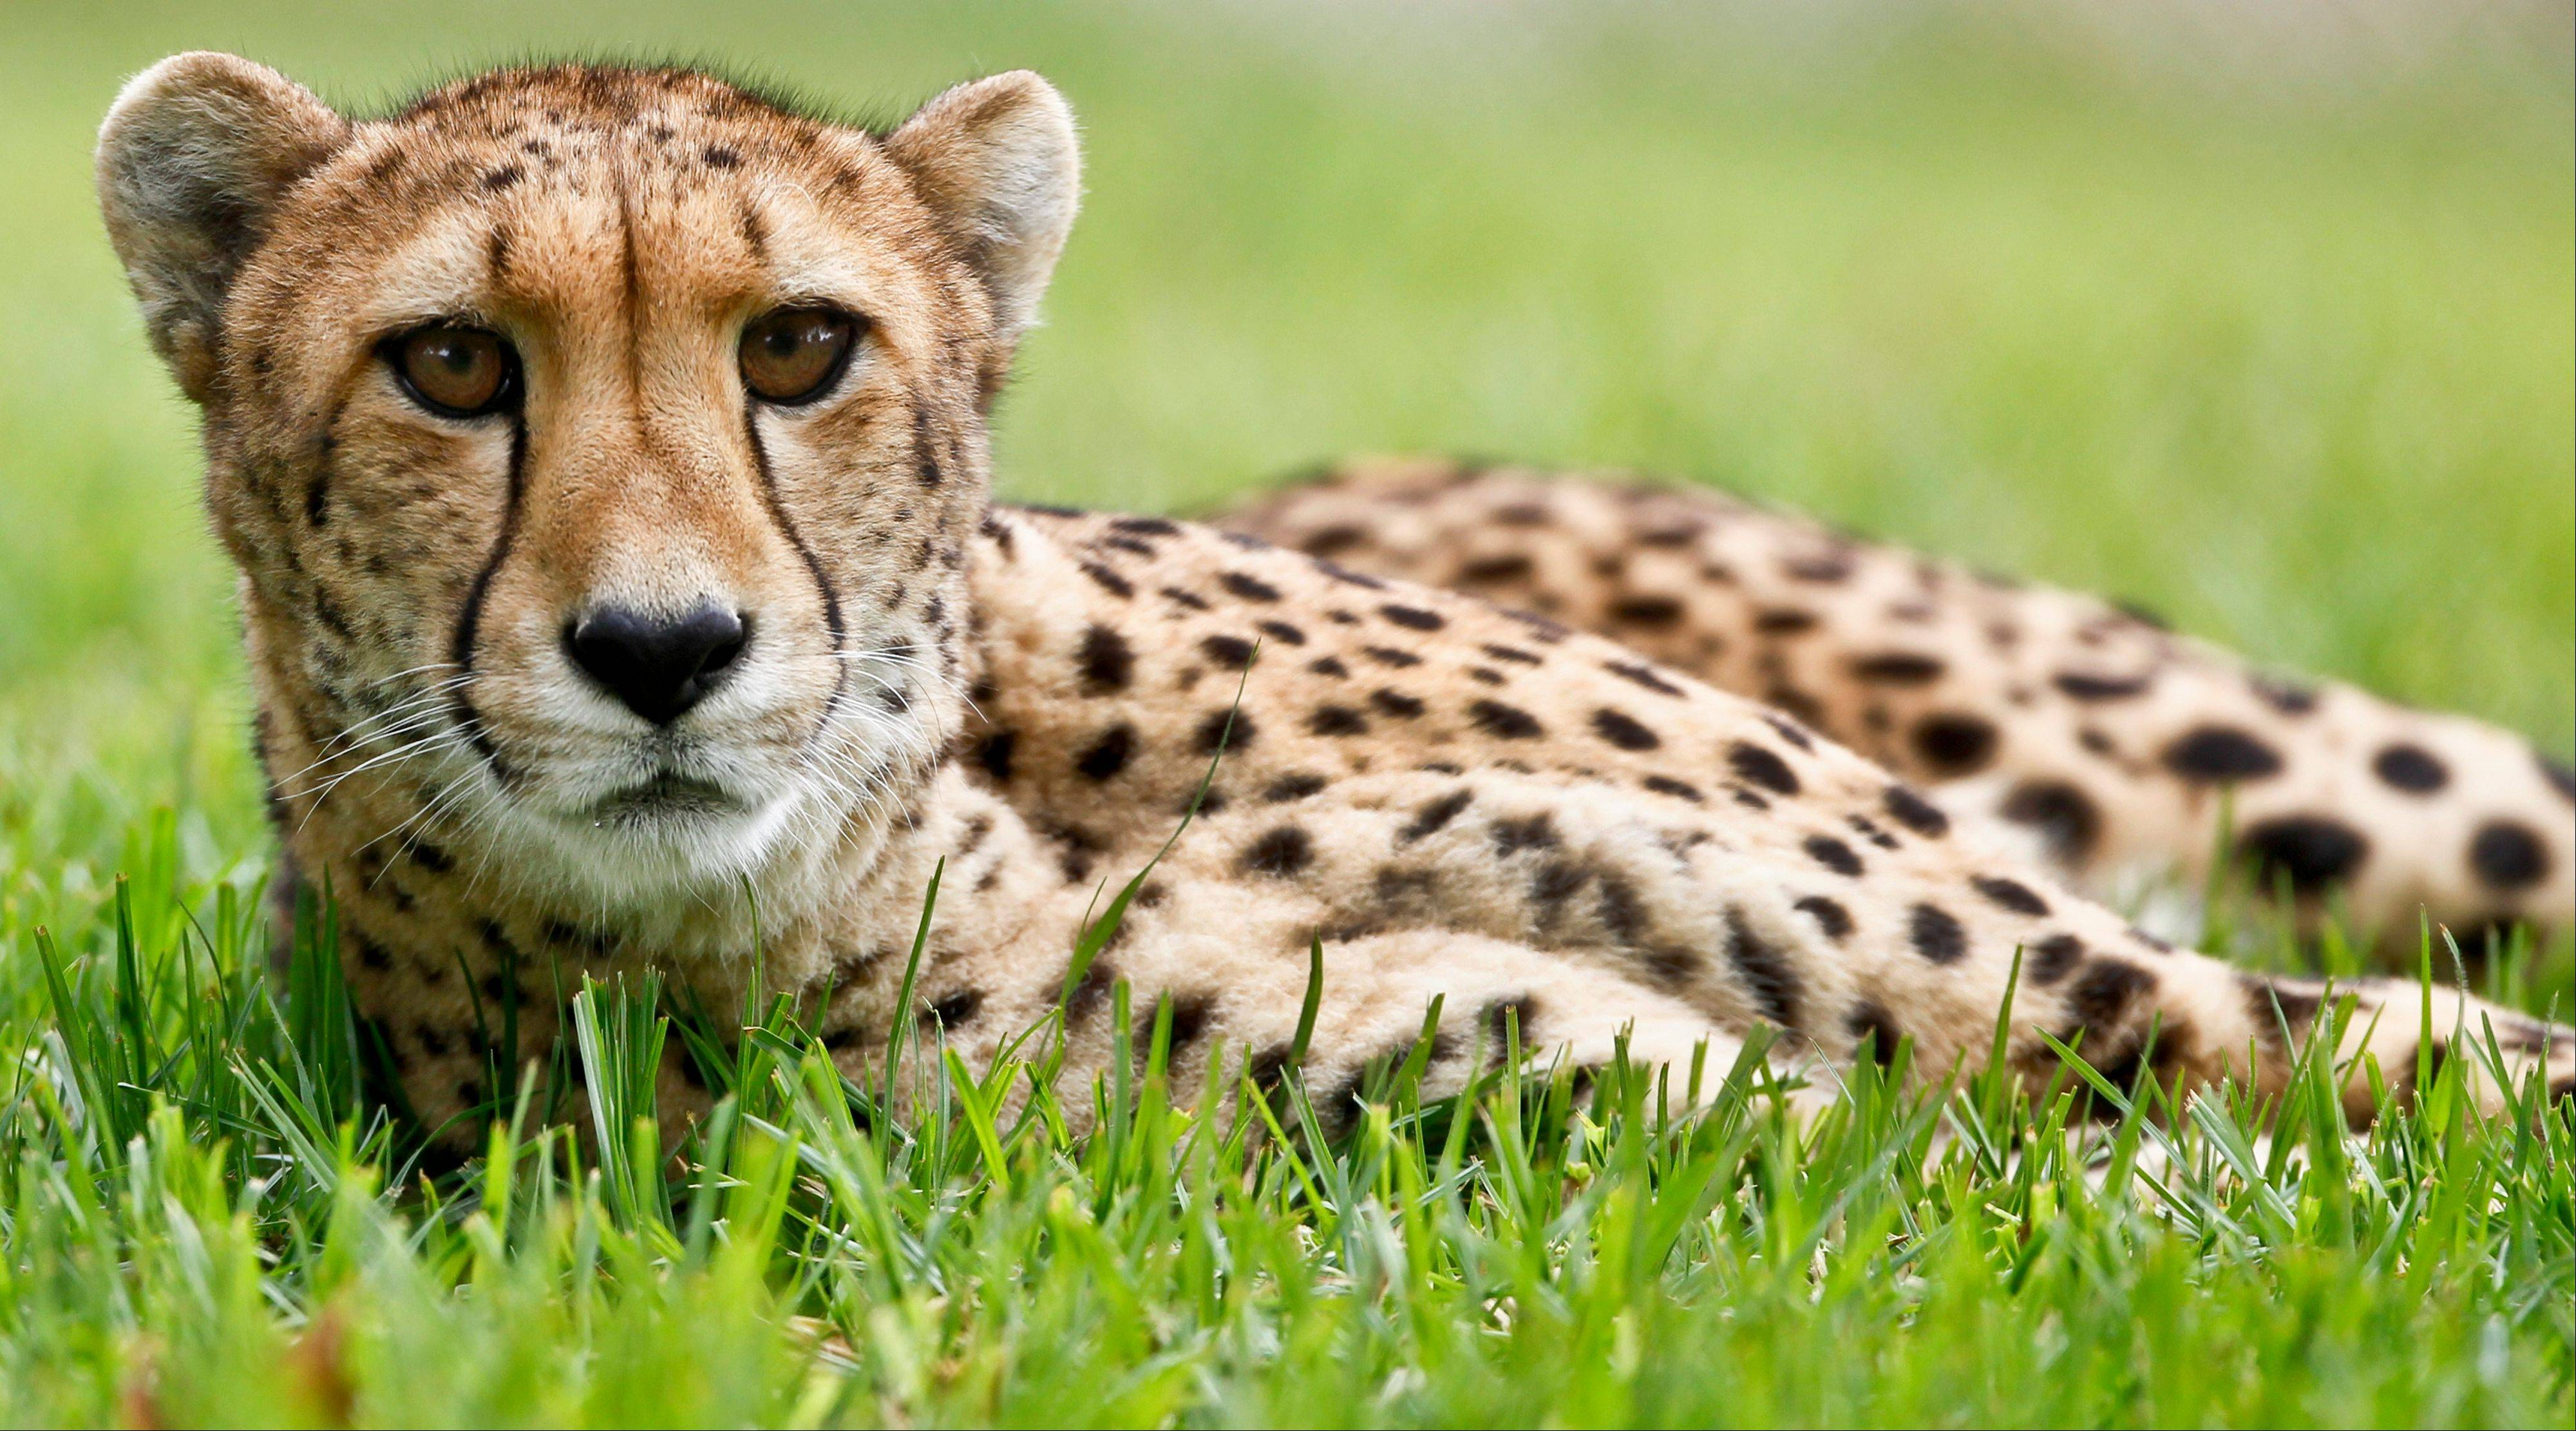 Nairobi, a 9-year-old female cheetah, keeps an eye on activity in an adjacent enclosure at the cheetah breeding facility at Safari Park in Escondido, Calif. Cheetahs might be the fastest mammals in the world, but they are also the world's biggest scaredy-cats.